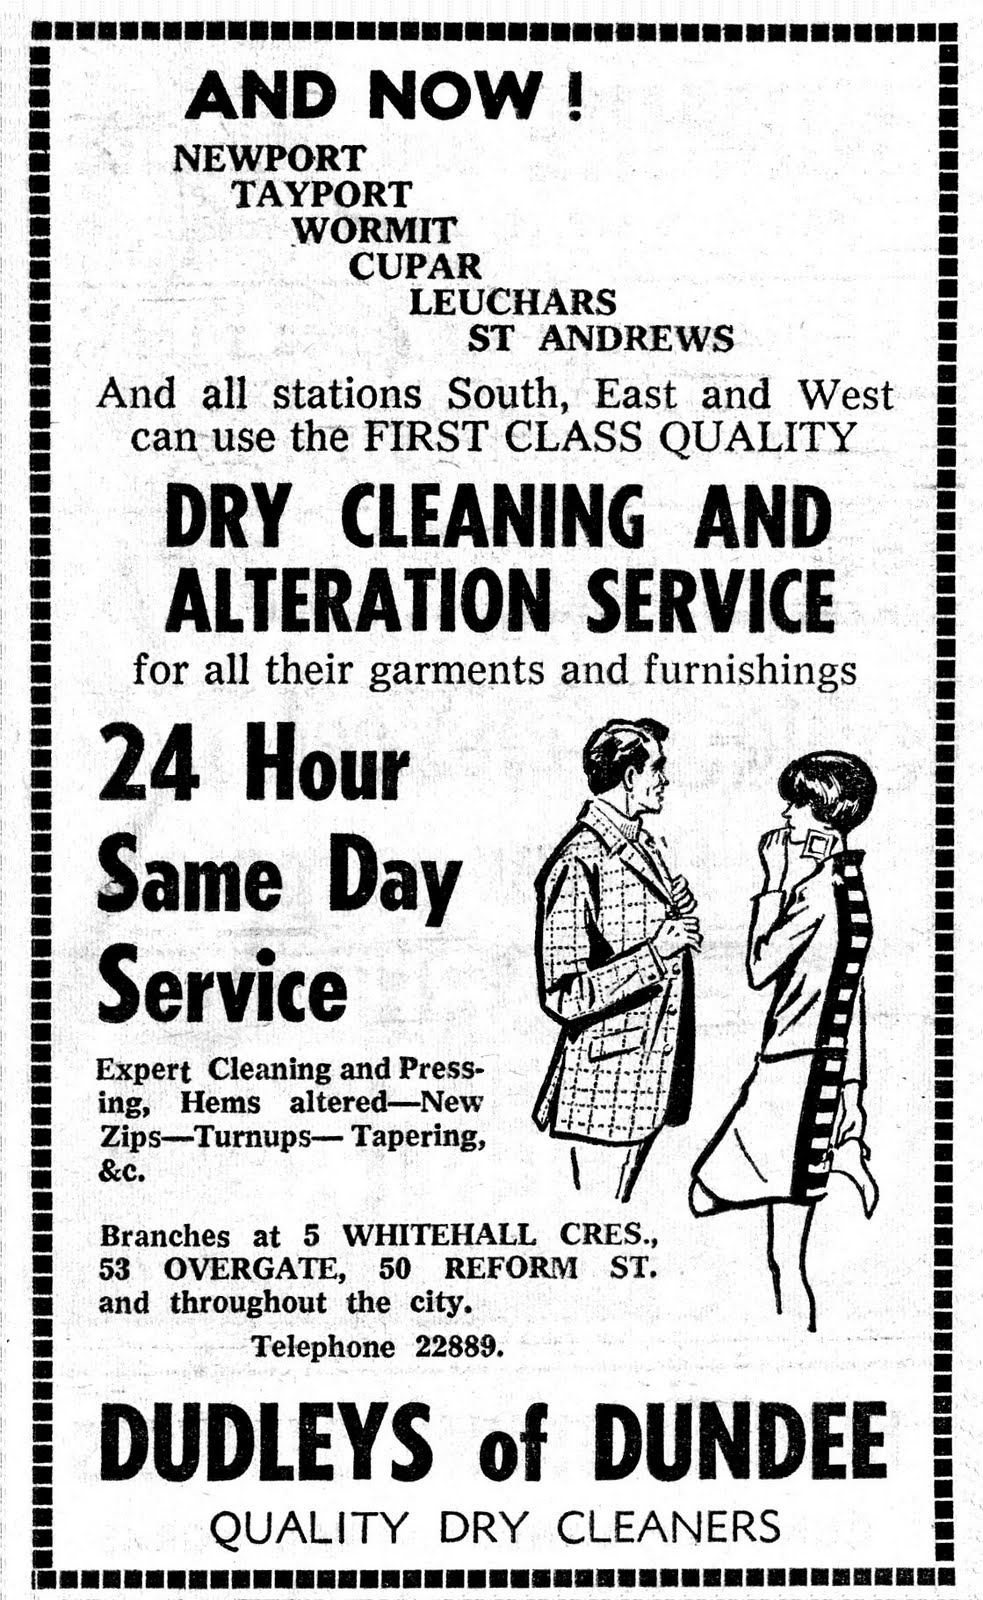 retro dundee dudleys ad 1966 dudleys ad 1966